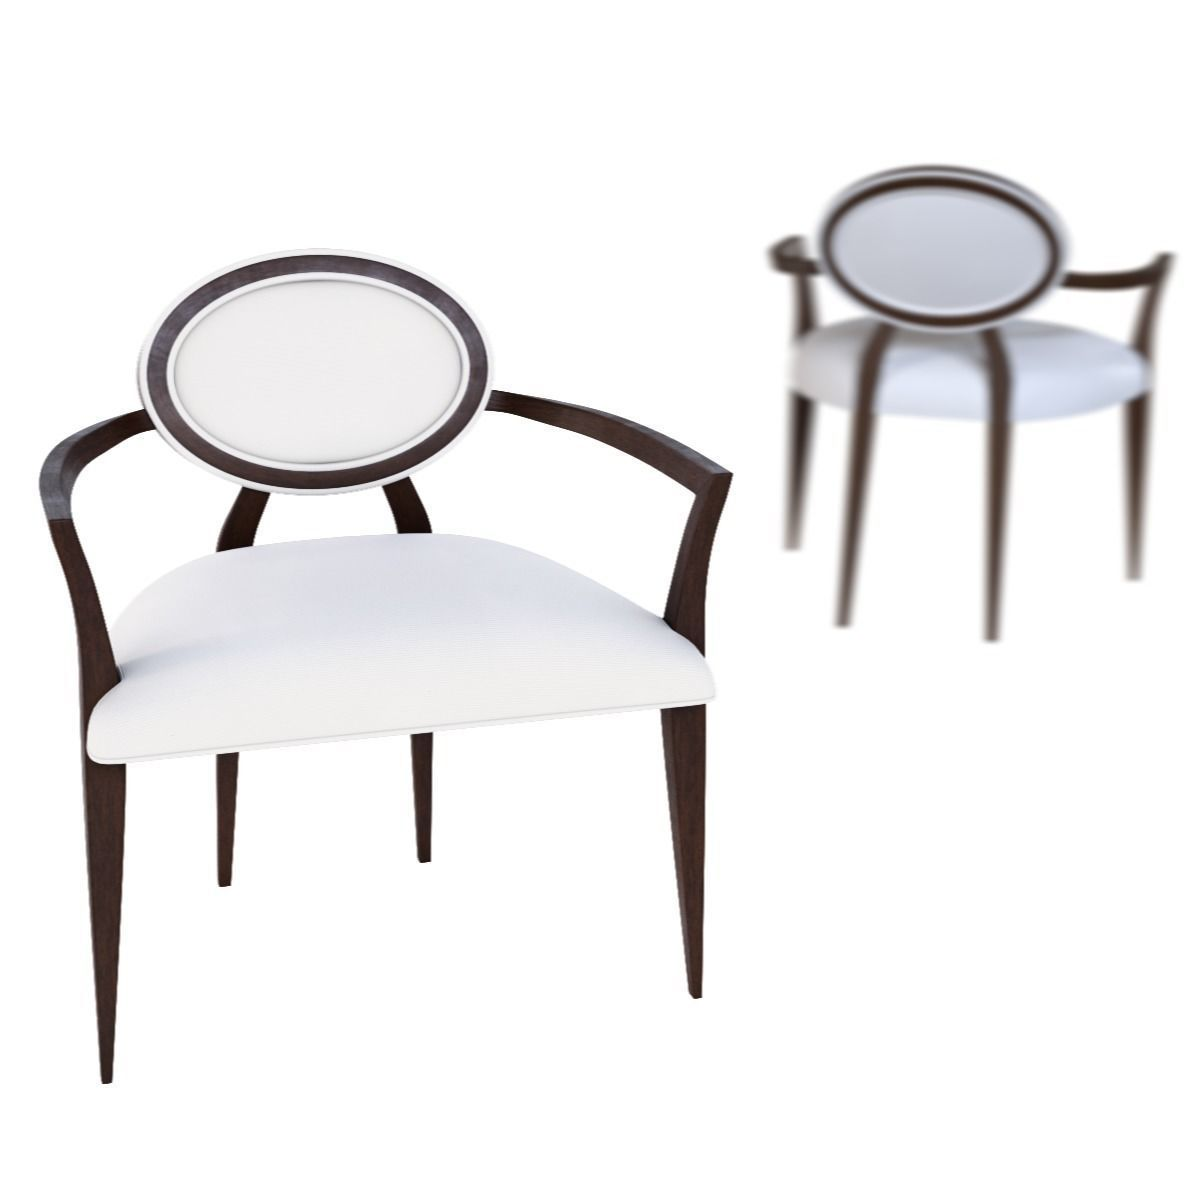 Christopher Guy Chair with  Armrest